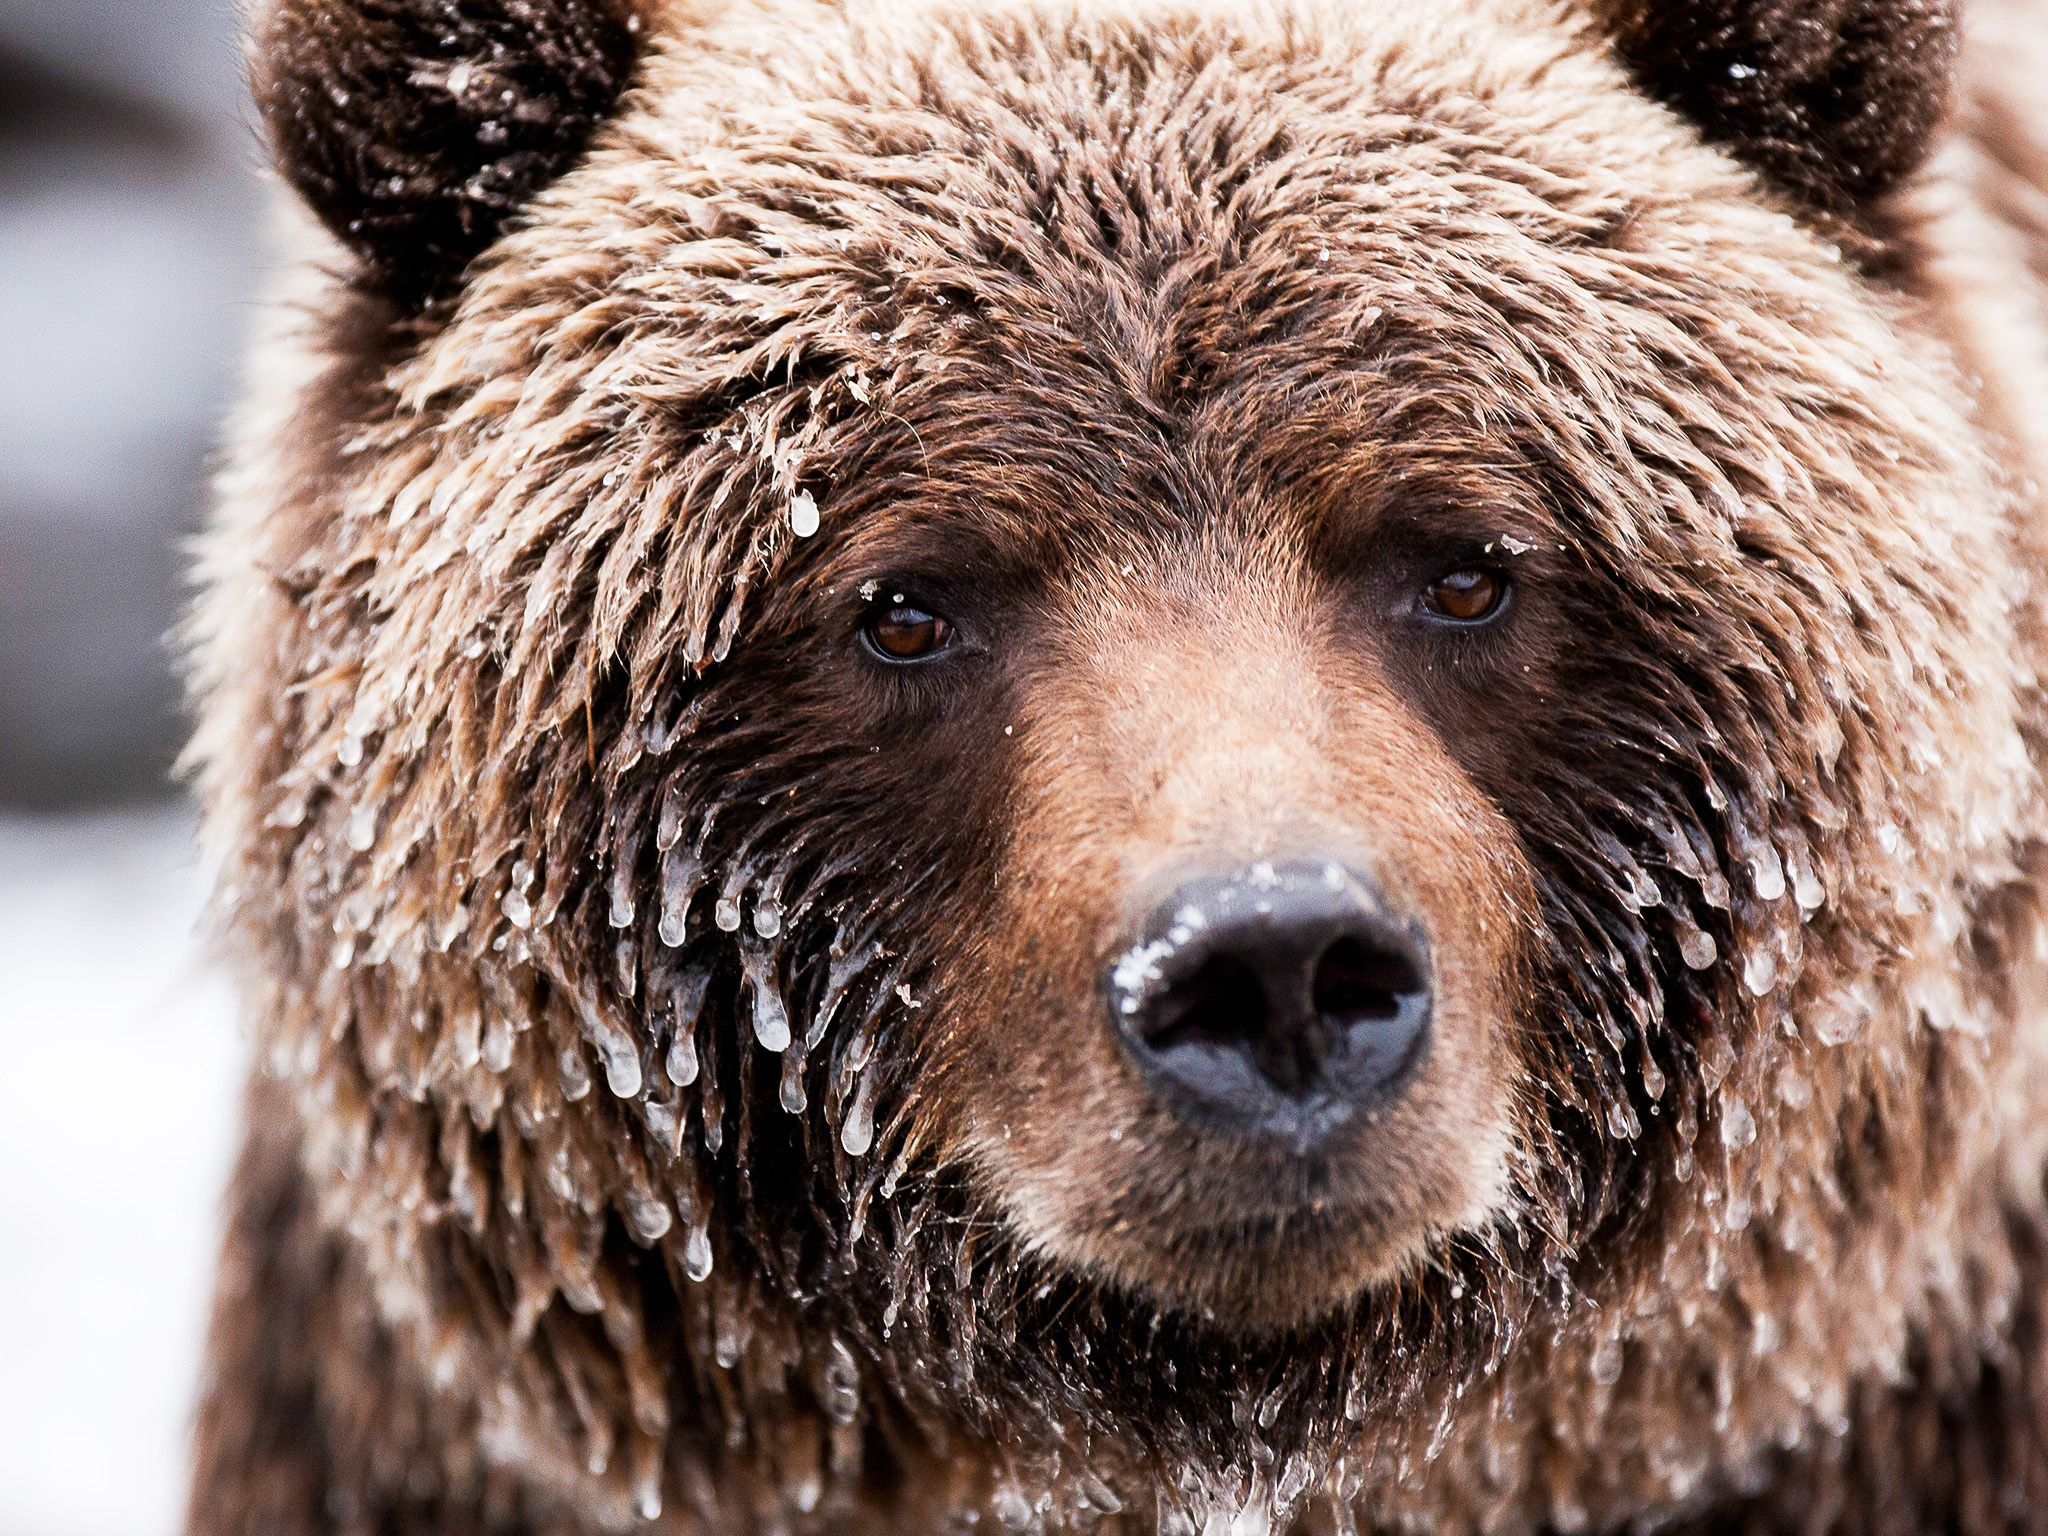 The frosted face of a brown bear (Grizzly). This image is from Wild Canada. [Фото дня - Октябрь 2014]